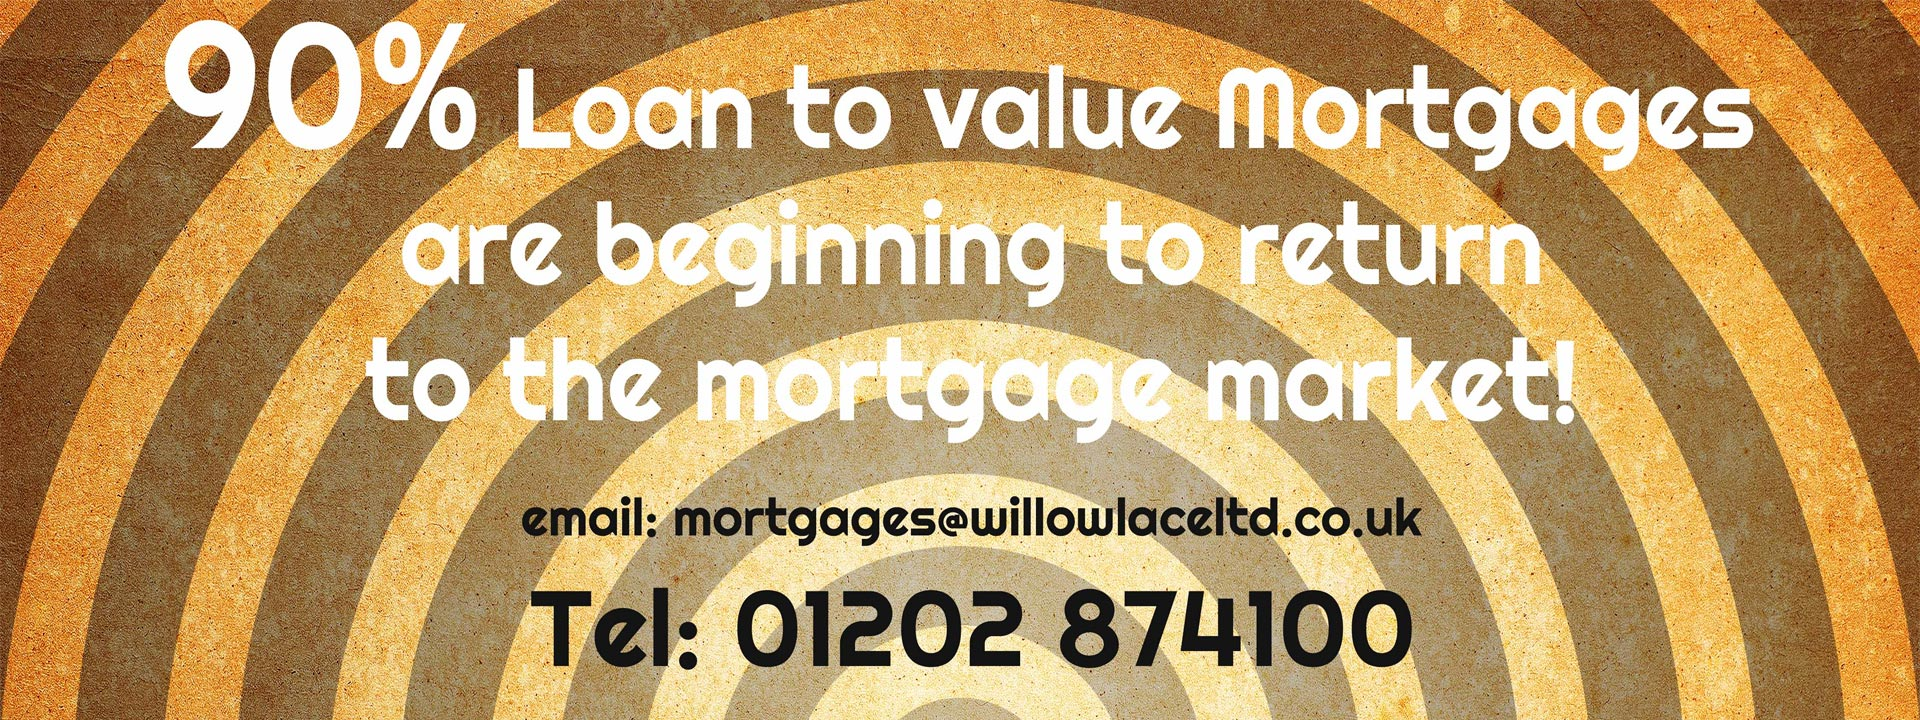 Willowlace News - 90% Loan to Value Mortgages are Beginning to Return to the Mortgage Market